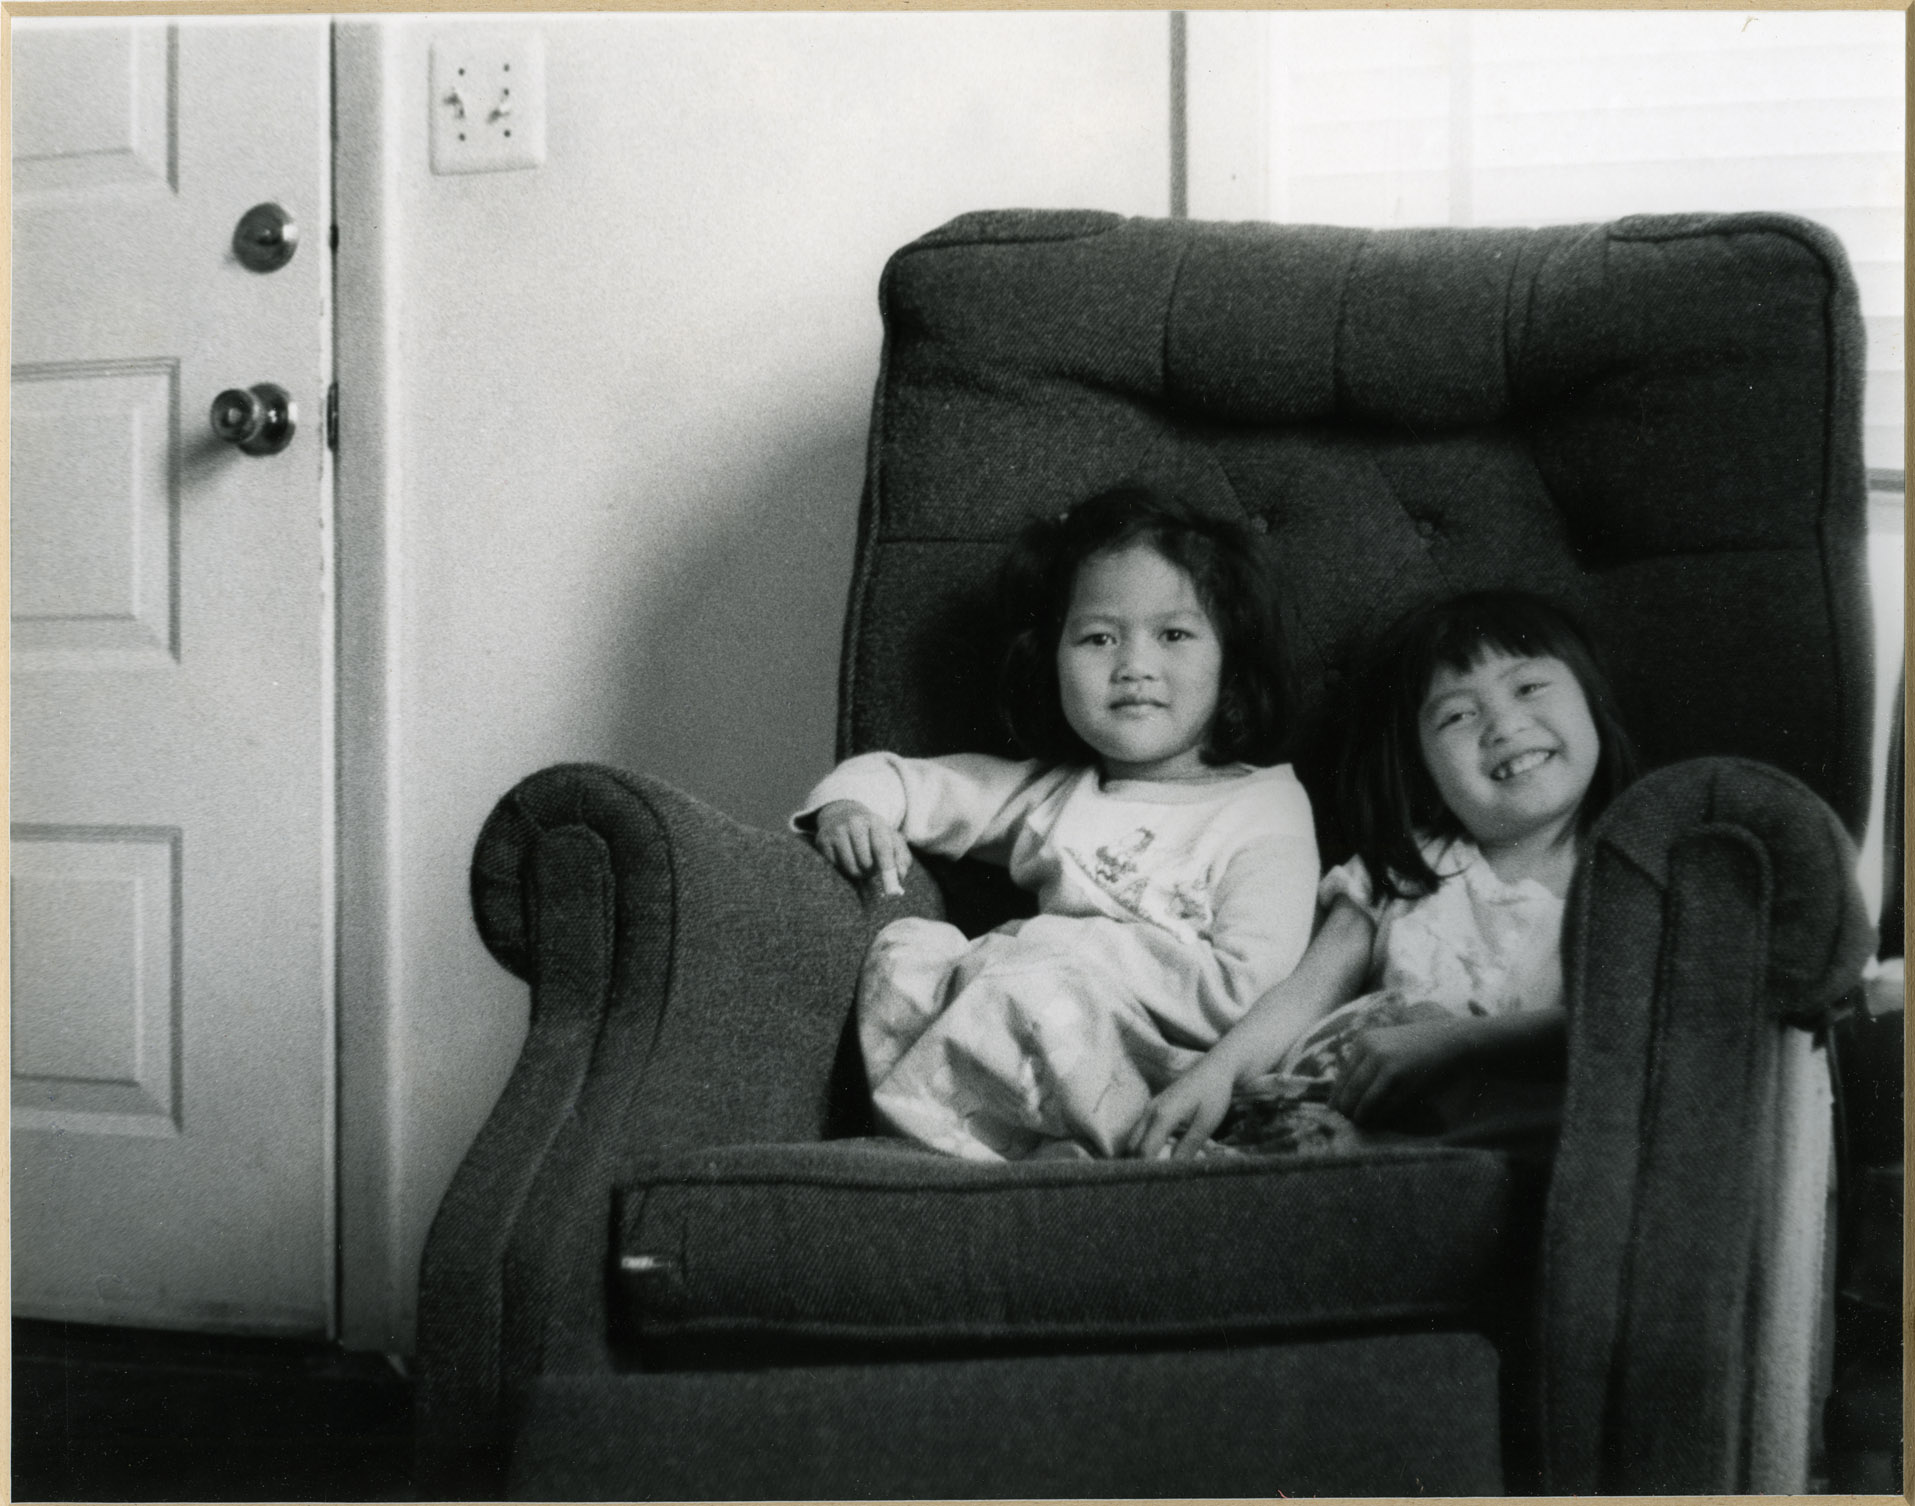 Image of At home, photo by Cham Nan Koy, 1982